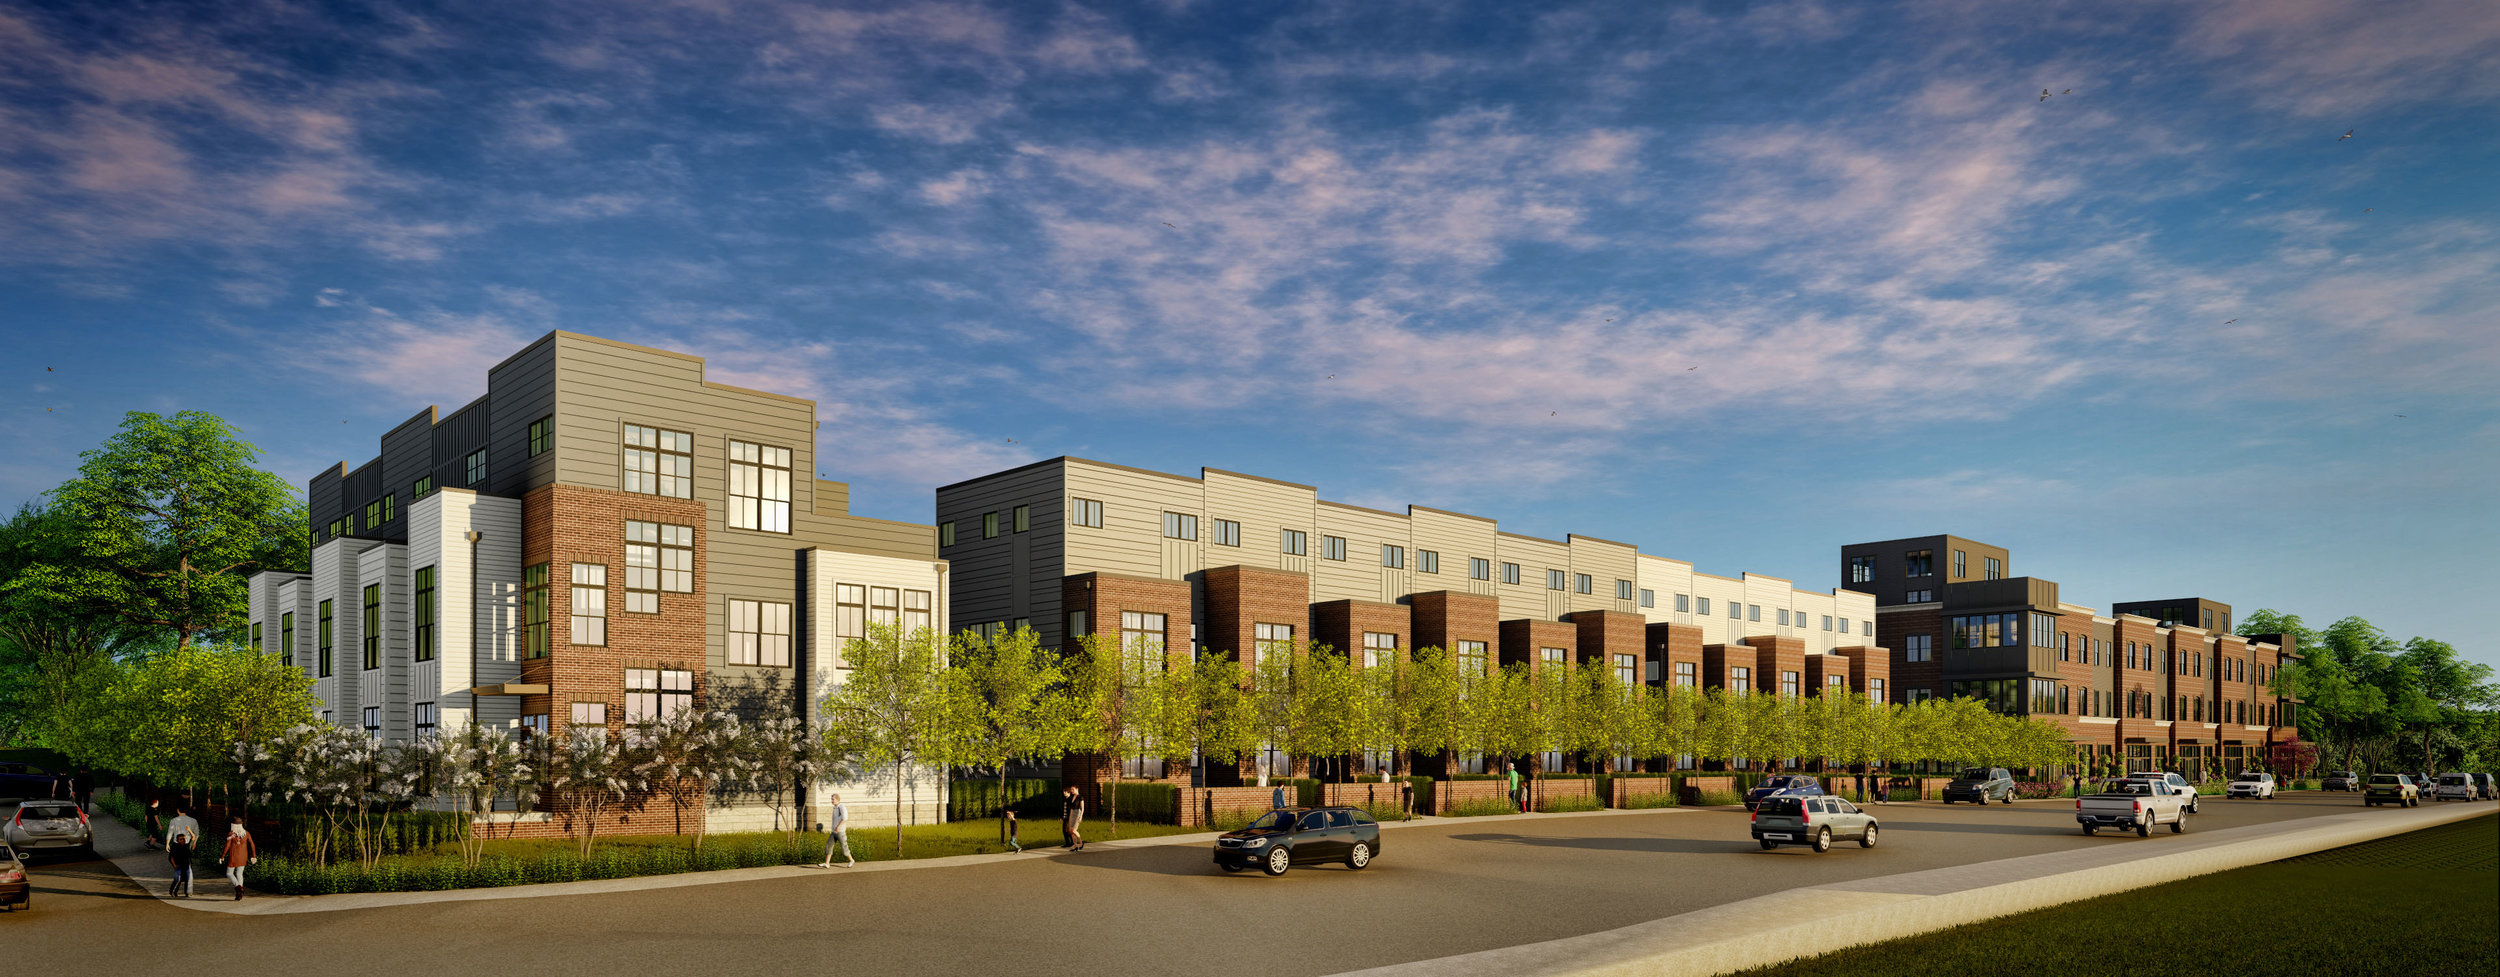 East Trinity Lane 3 Buildings 16 Townhomes